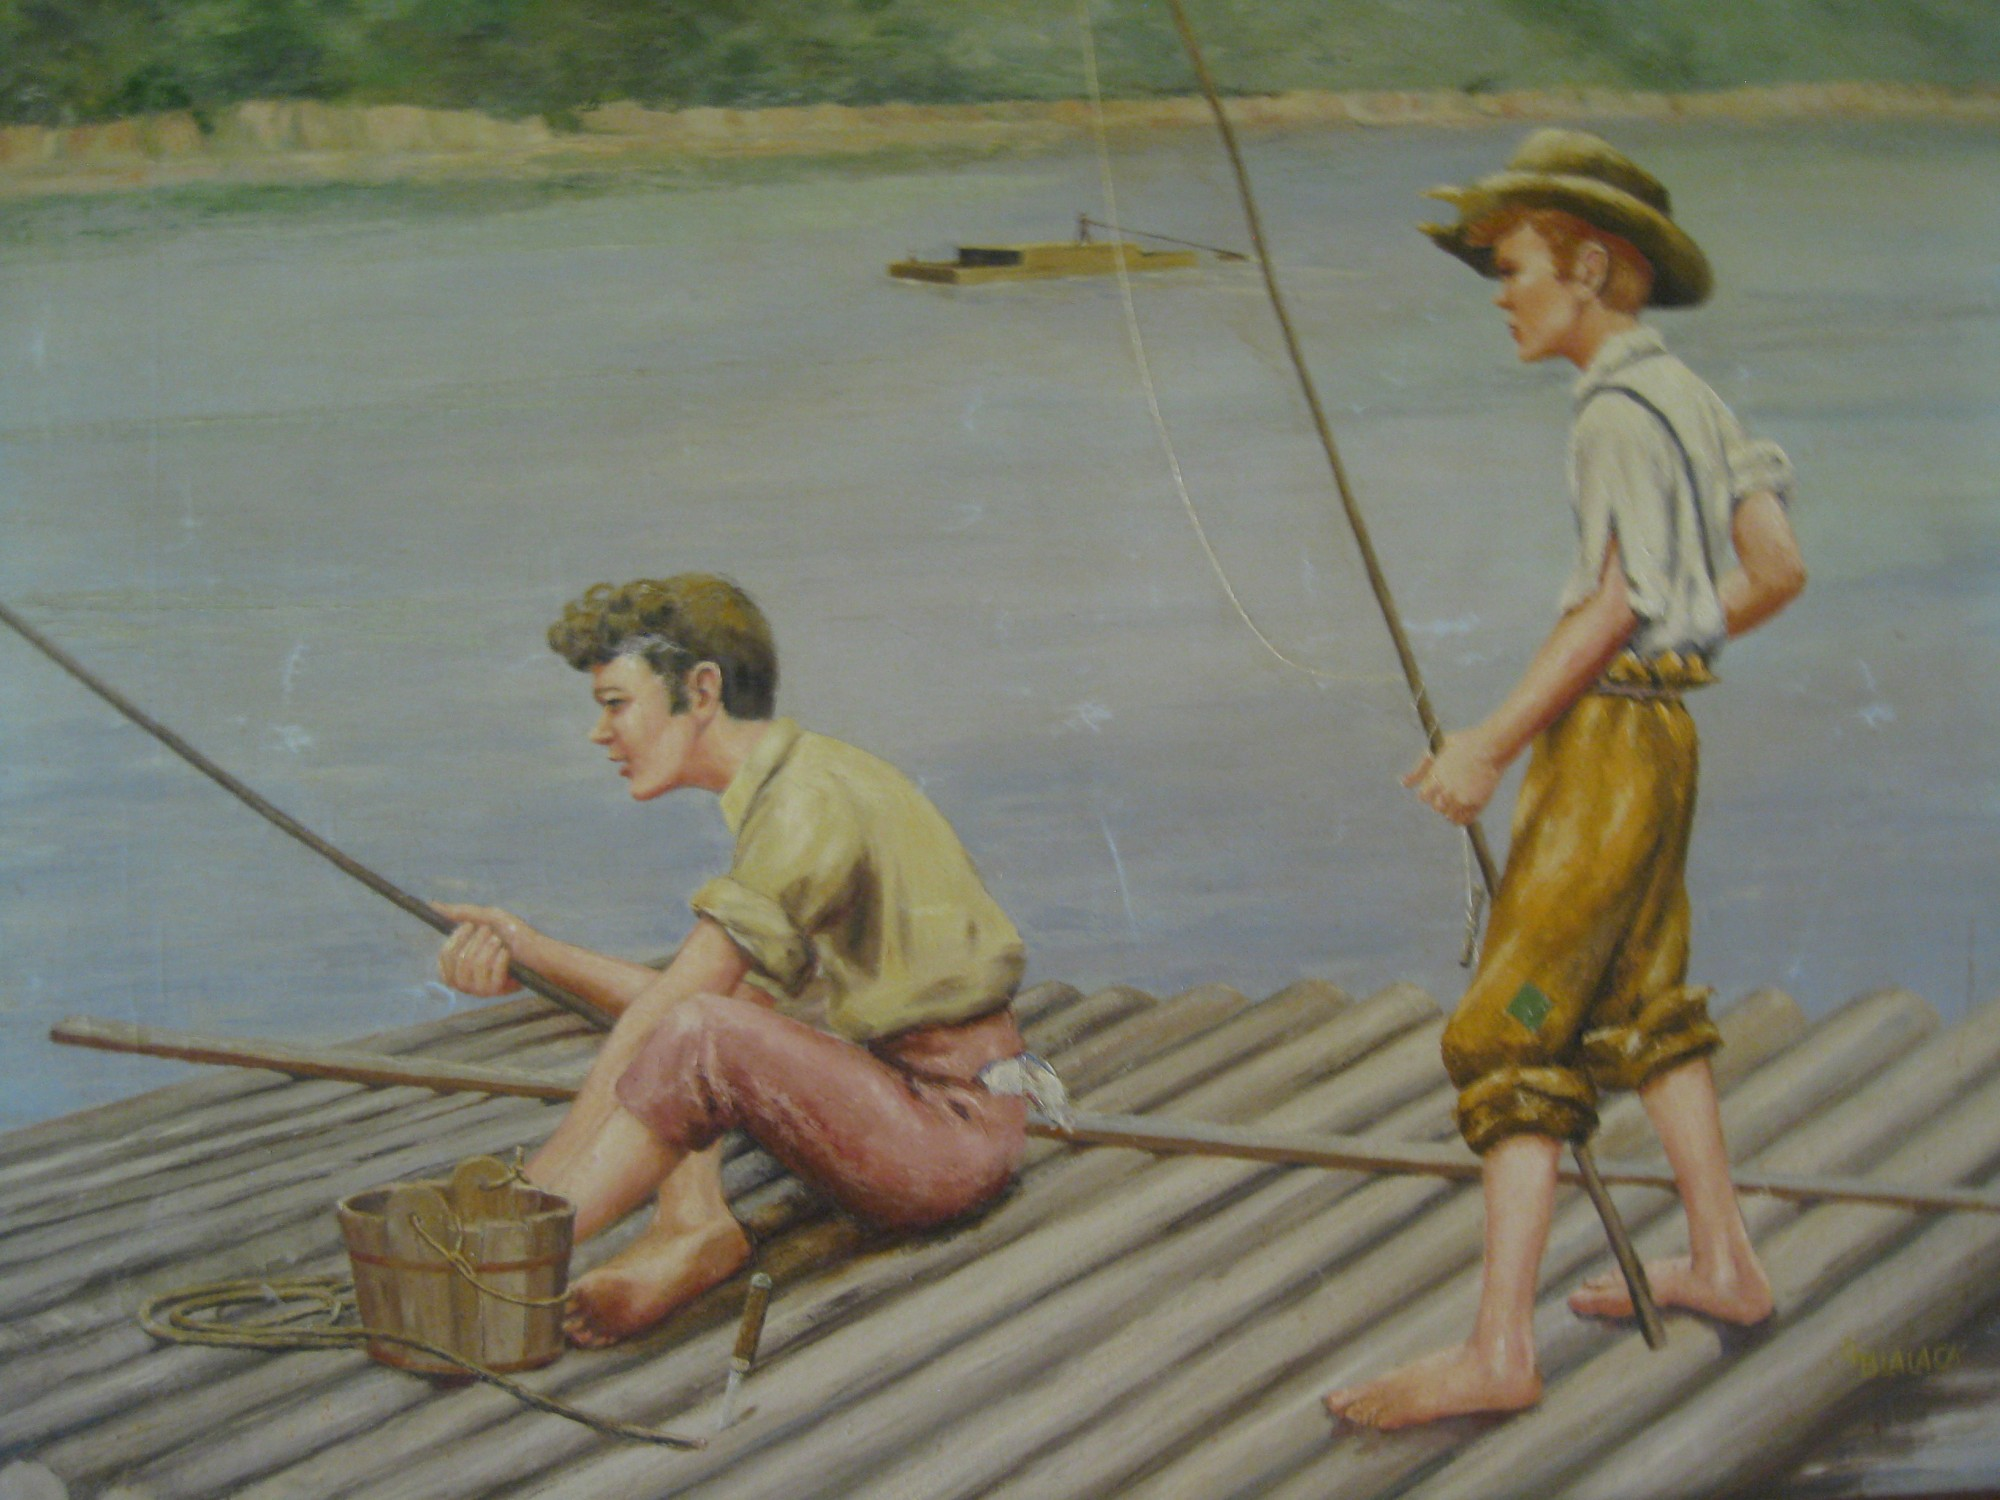 memphis mud island mississippi river museum tom sawyer and